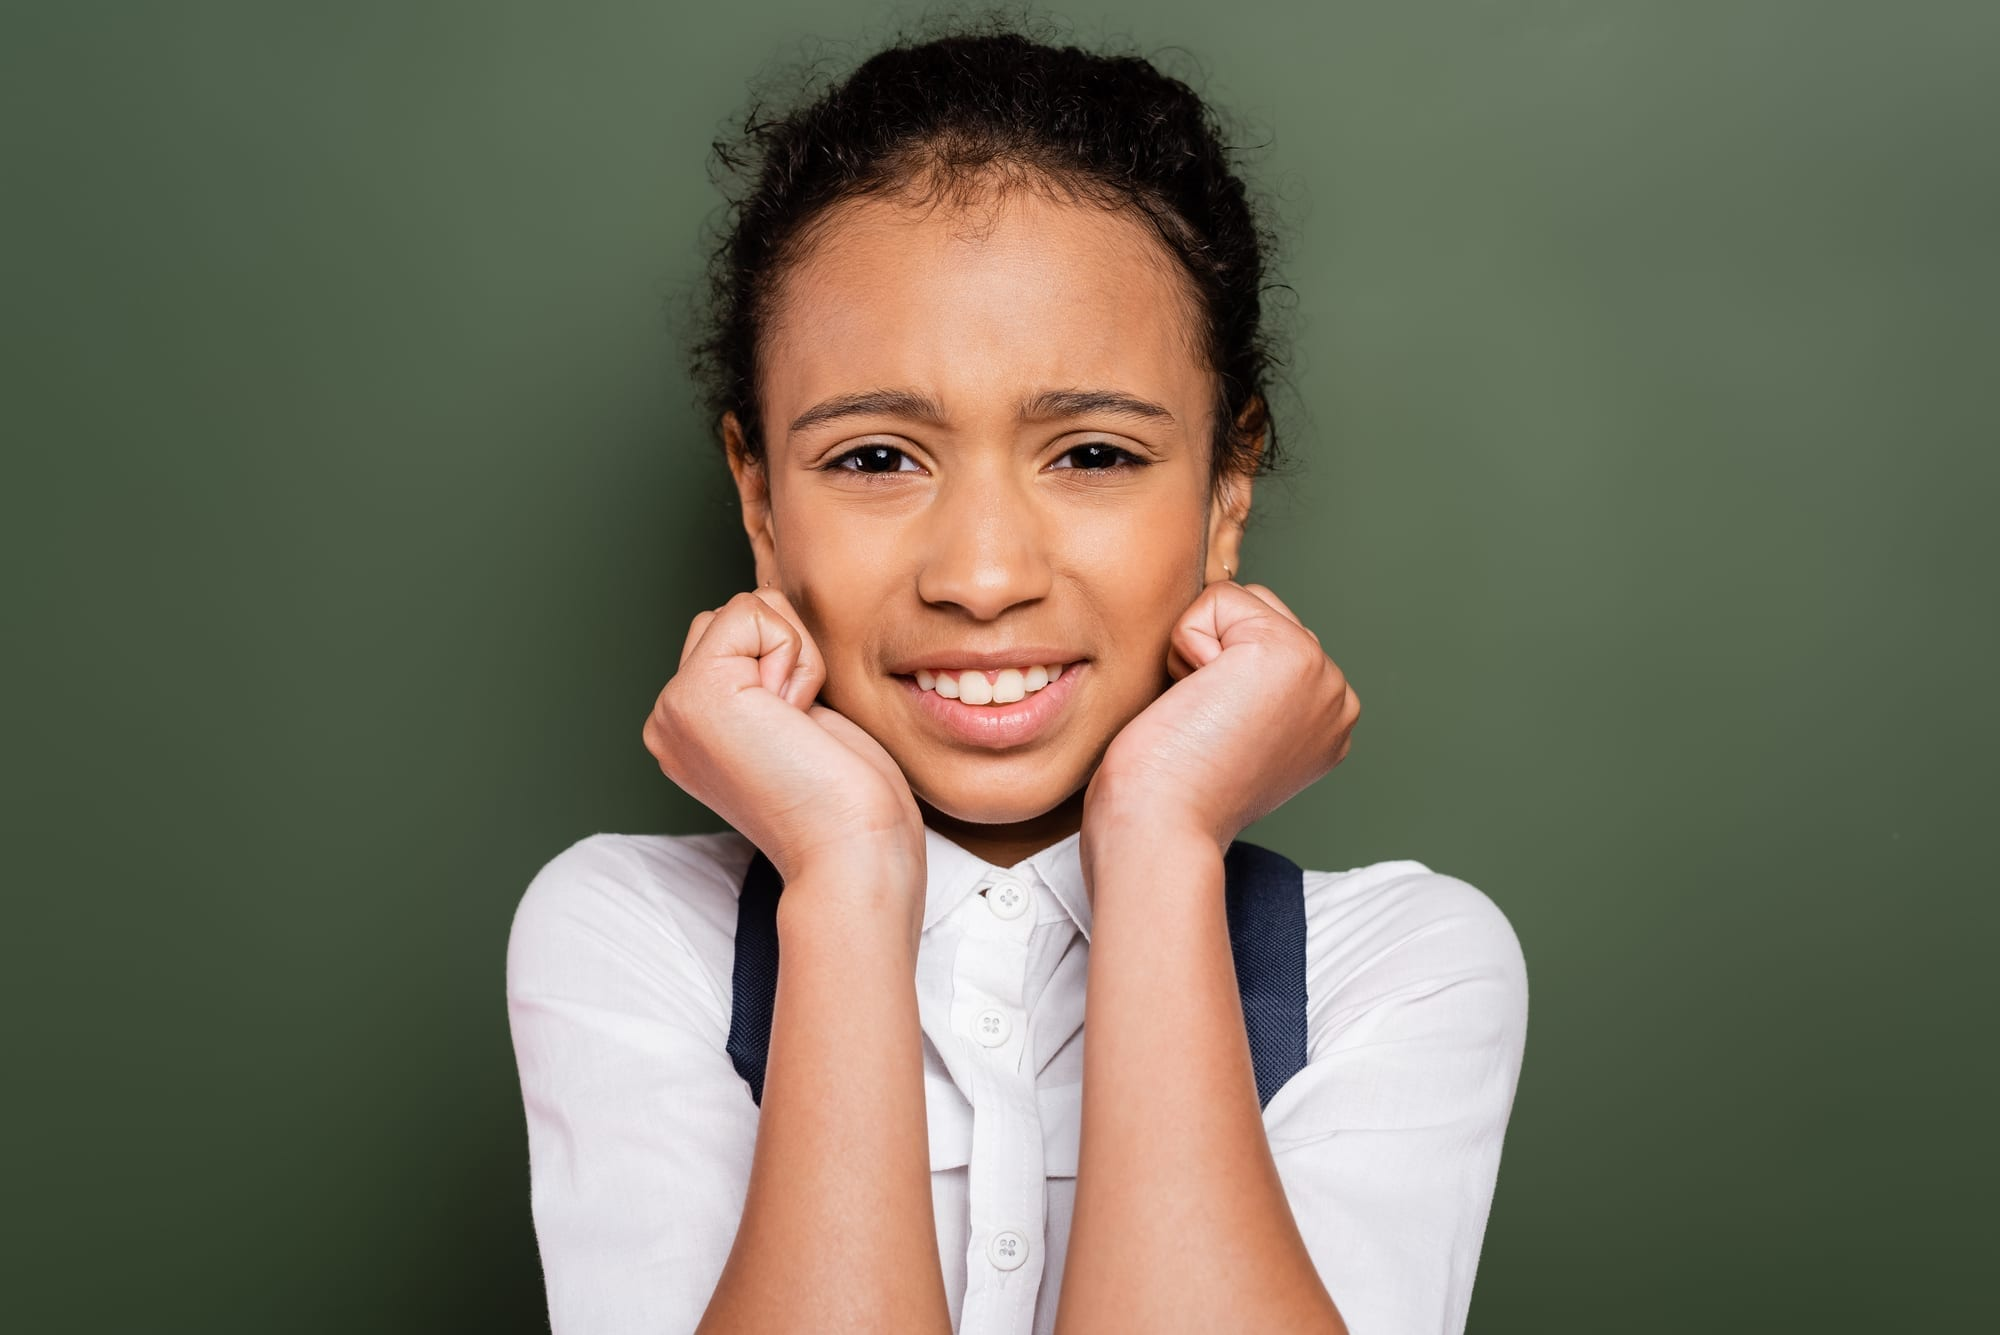 nervous young girl standing in front of green background